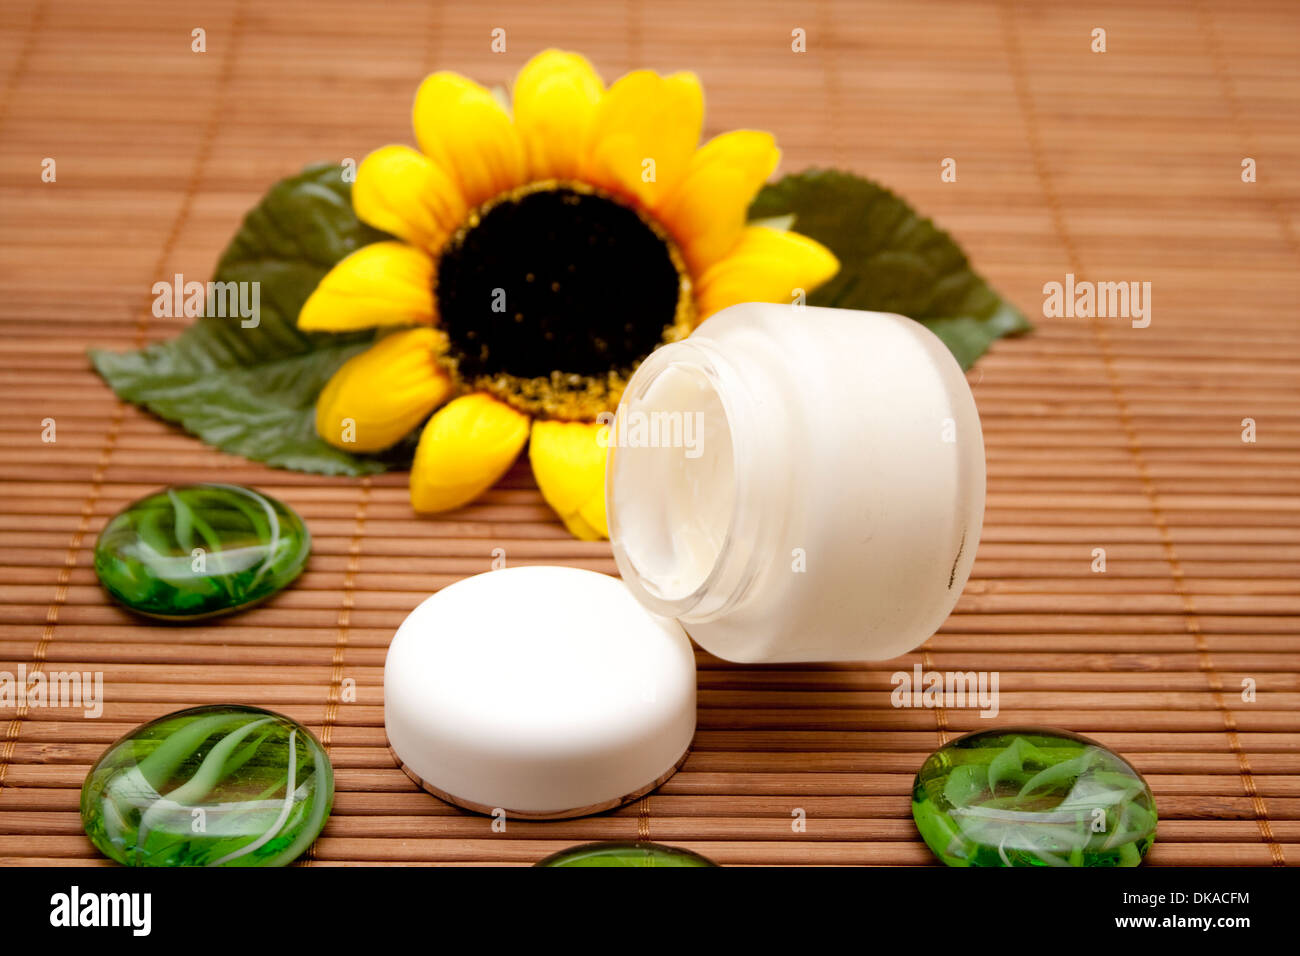 Face cream with glass stones - Stock Image